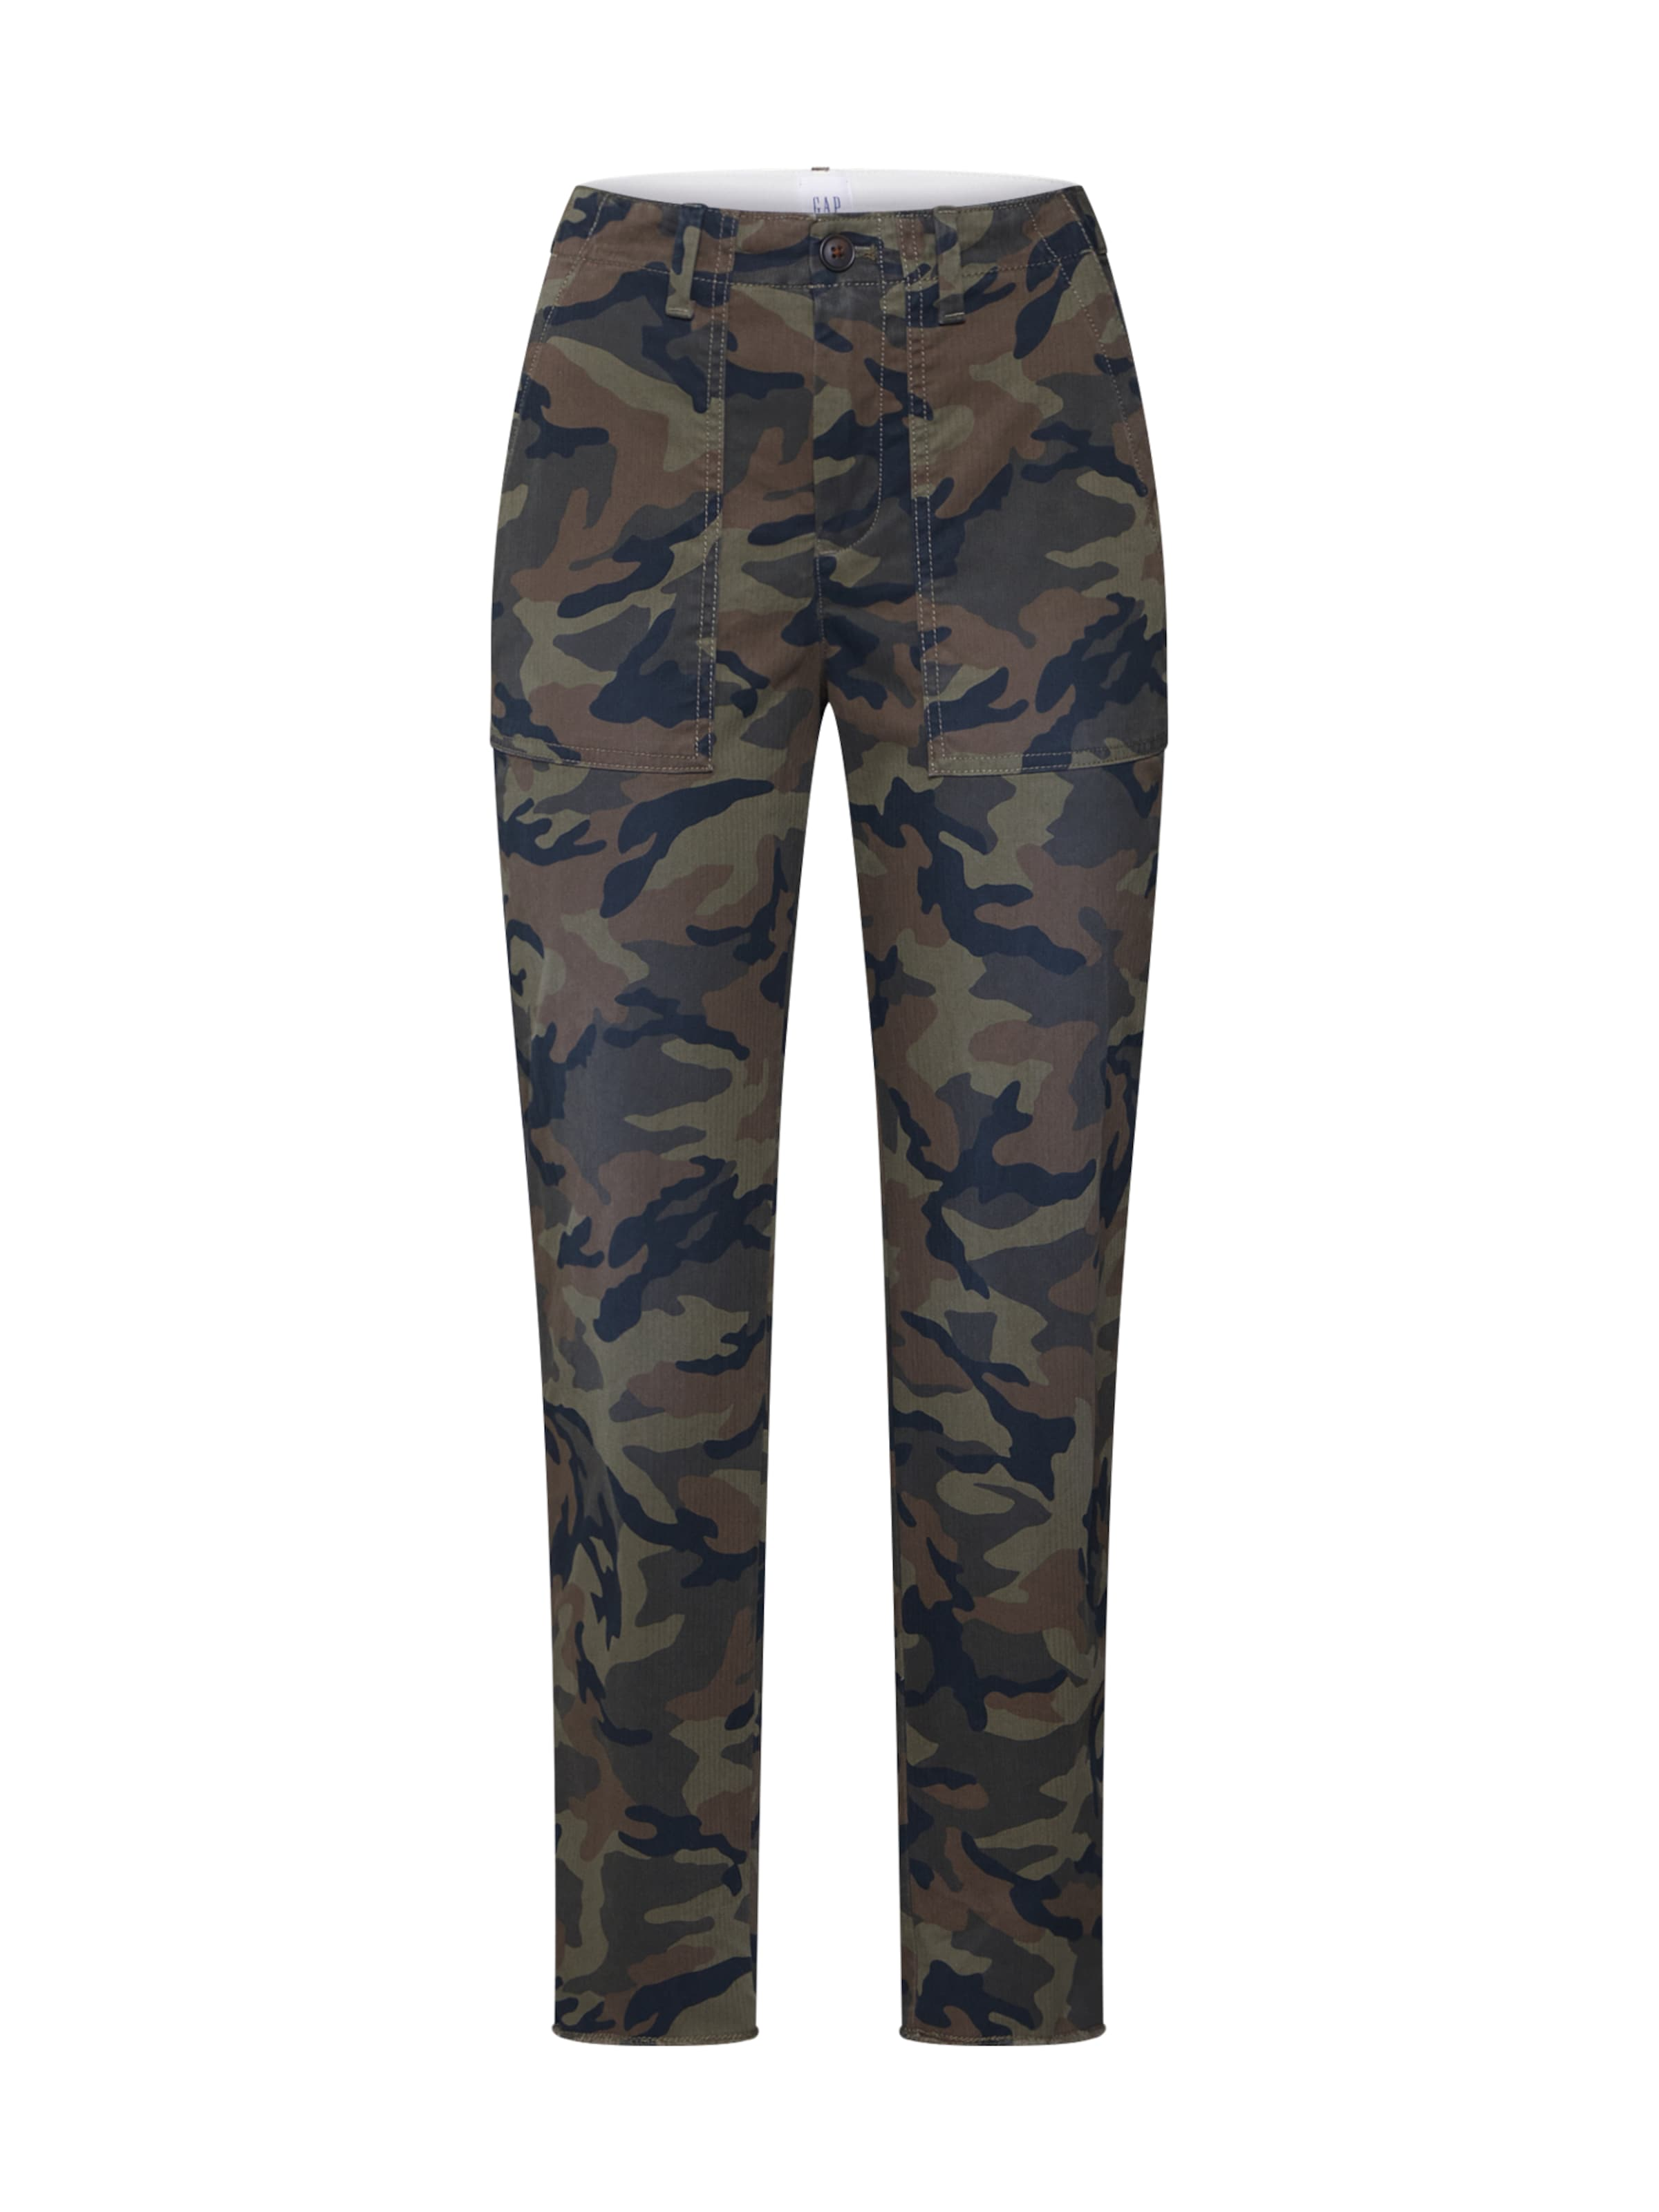 Utility Couleurs En Gap 'girlfriend Fray' Pantalon Chino VertMélange De wikXOPZuTl